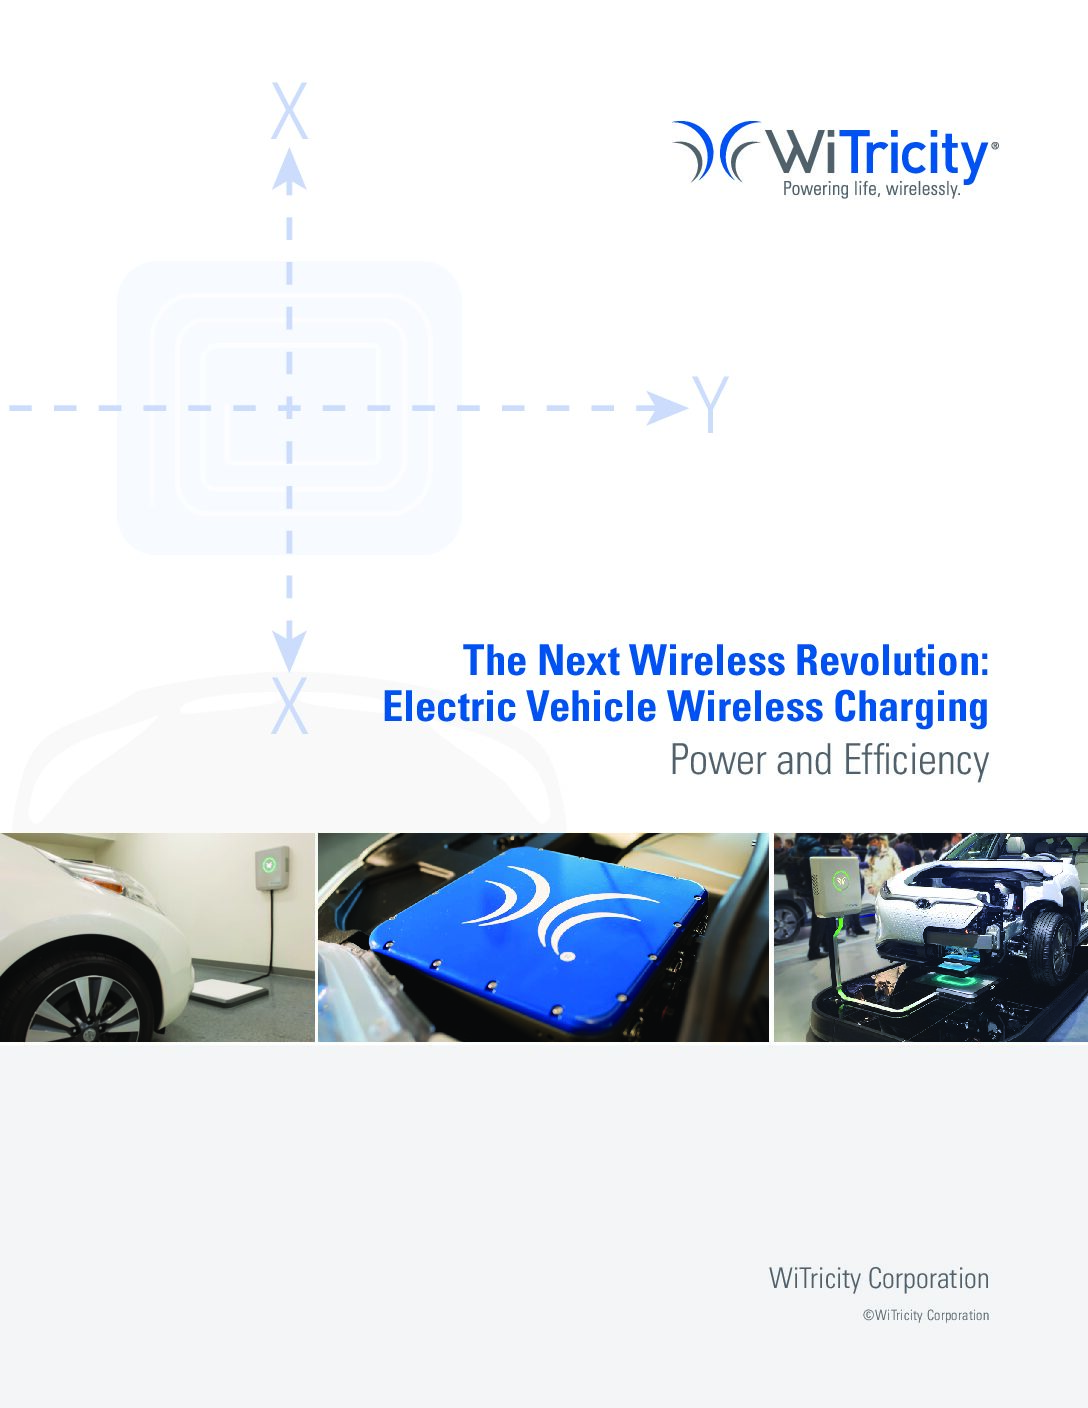 EV Wireless Charging: Power and Efficiency